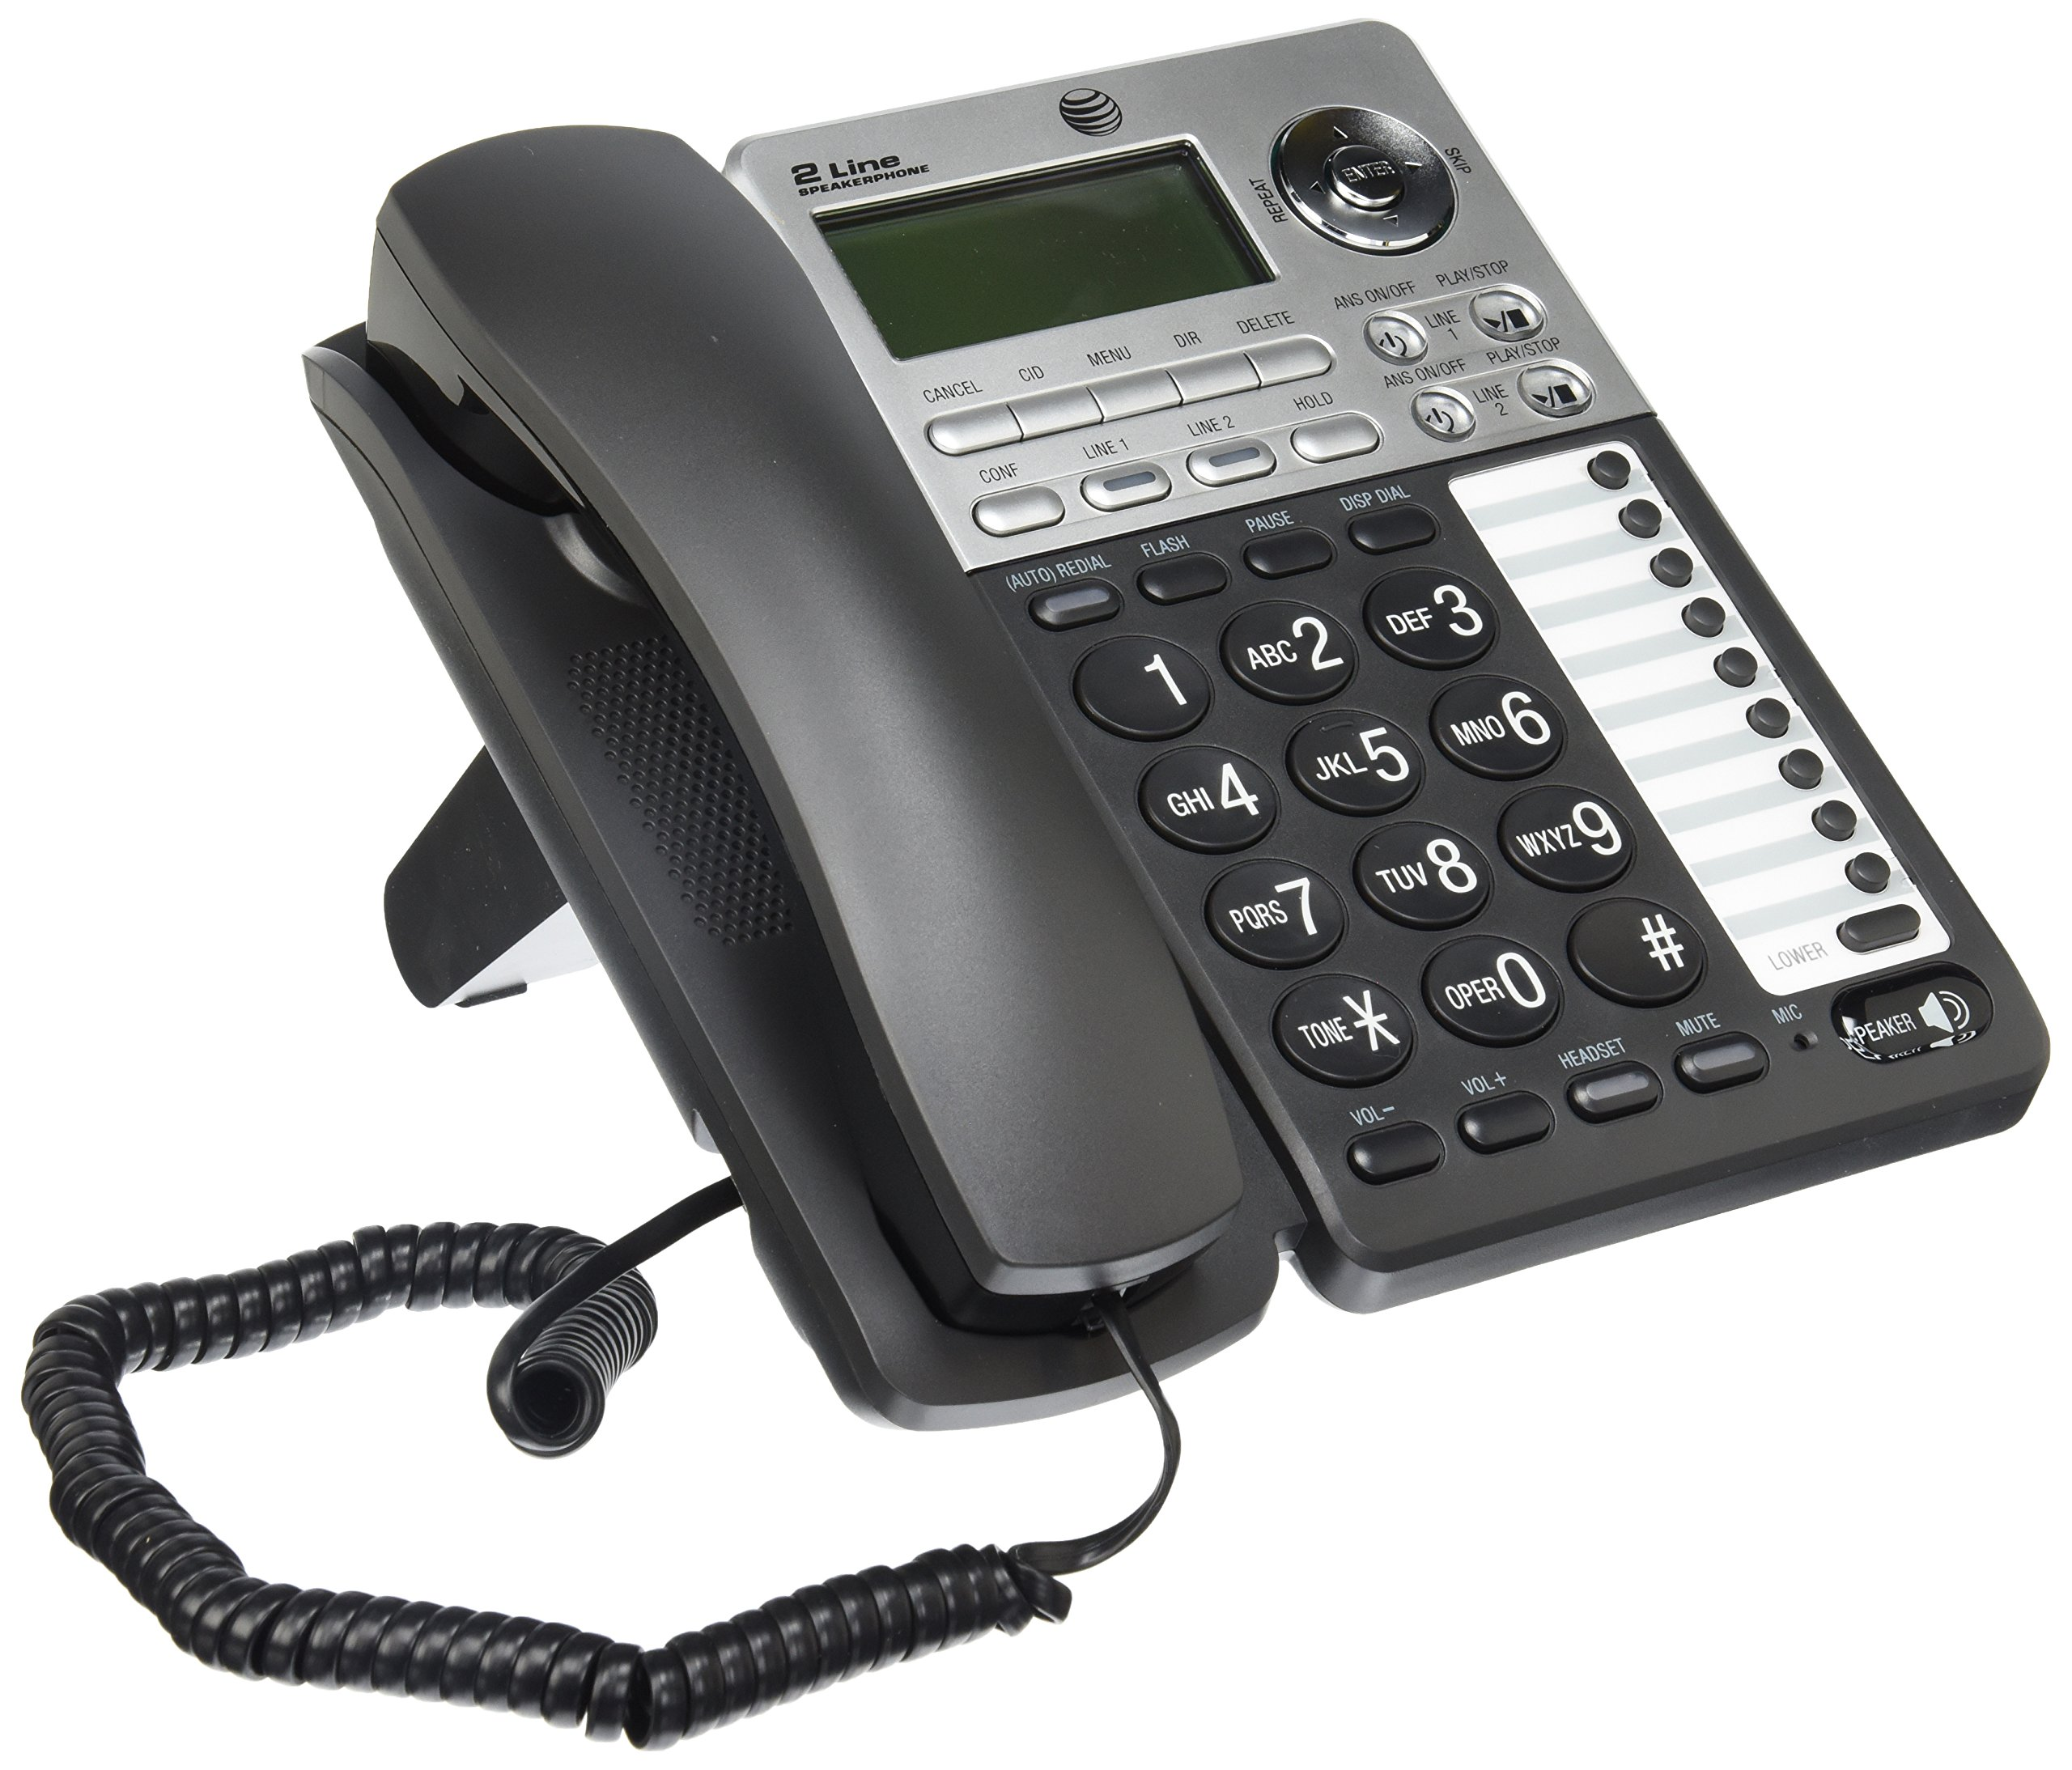 AT&T ML17939 2-Line Corded Telephone with Digital Answering System and Caller ID/Call Waiting, Black/Silver by AT&T